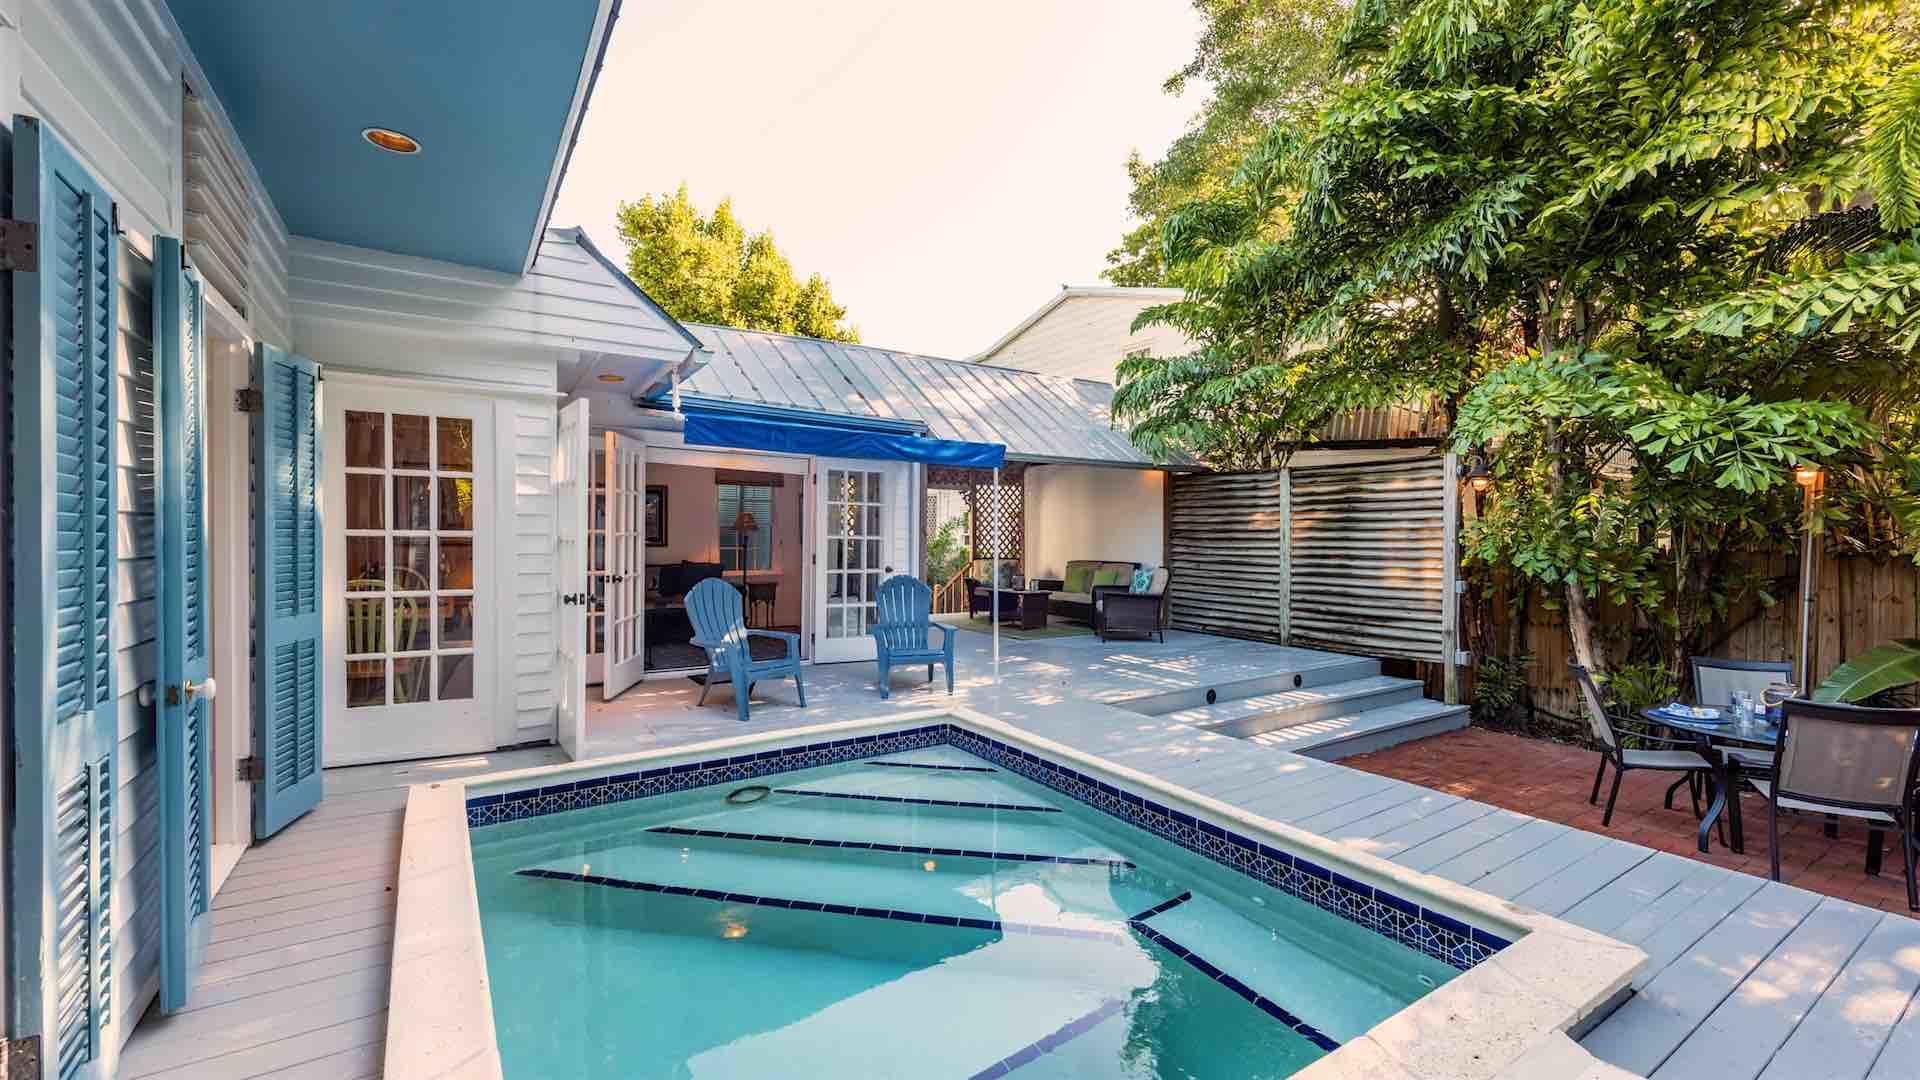 Pet Friendly vacation home in Key West with 3 bedrooms and heated pool rents monthly